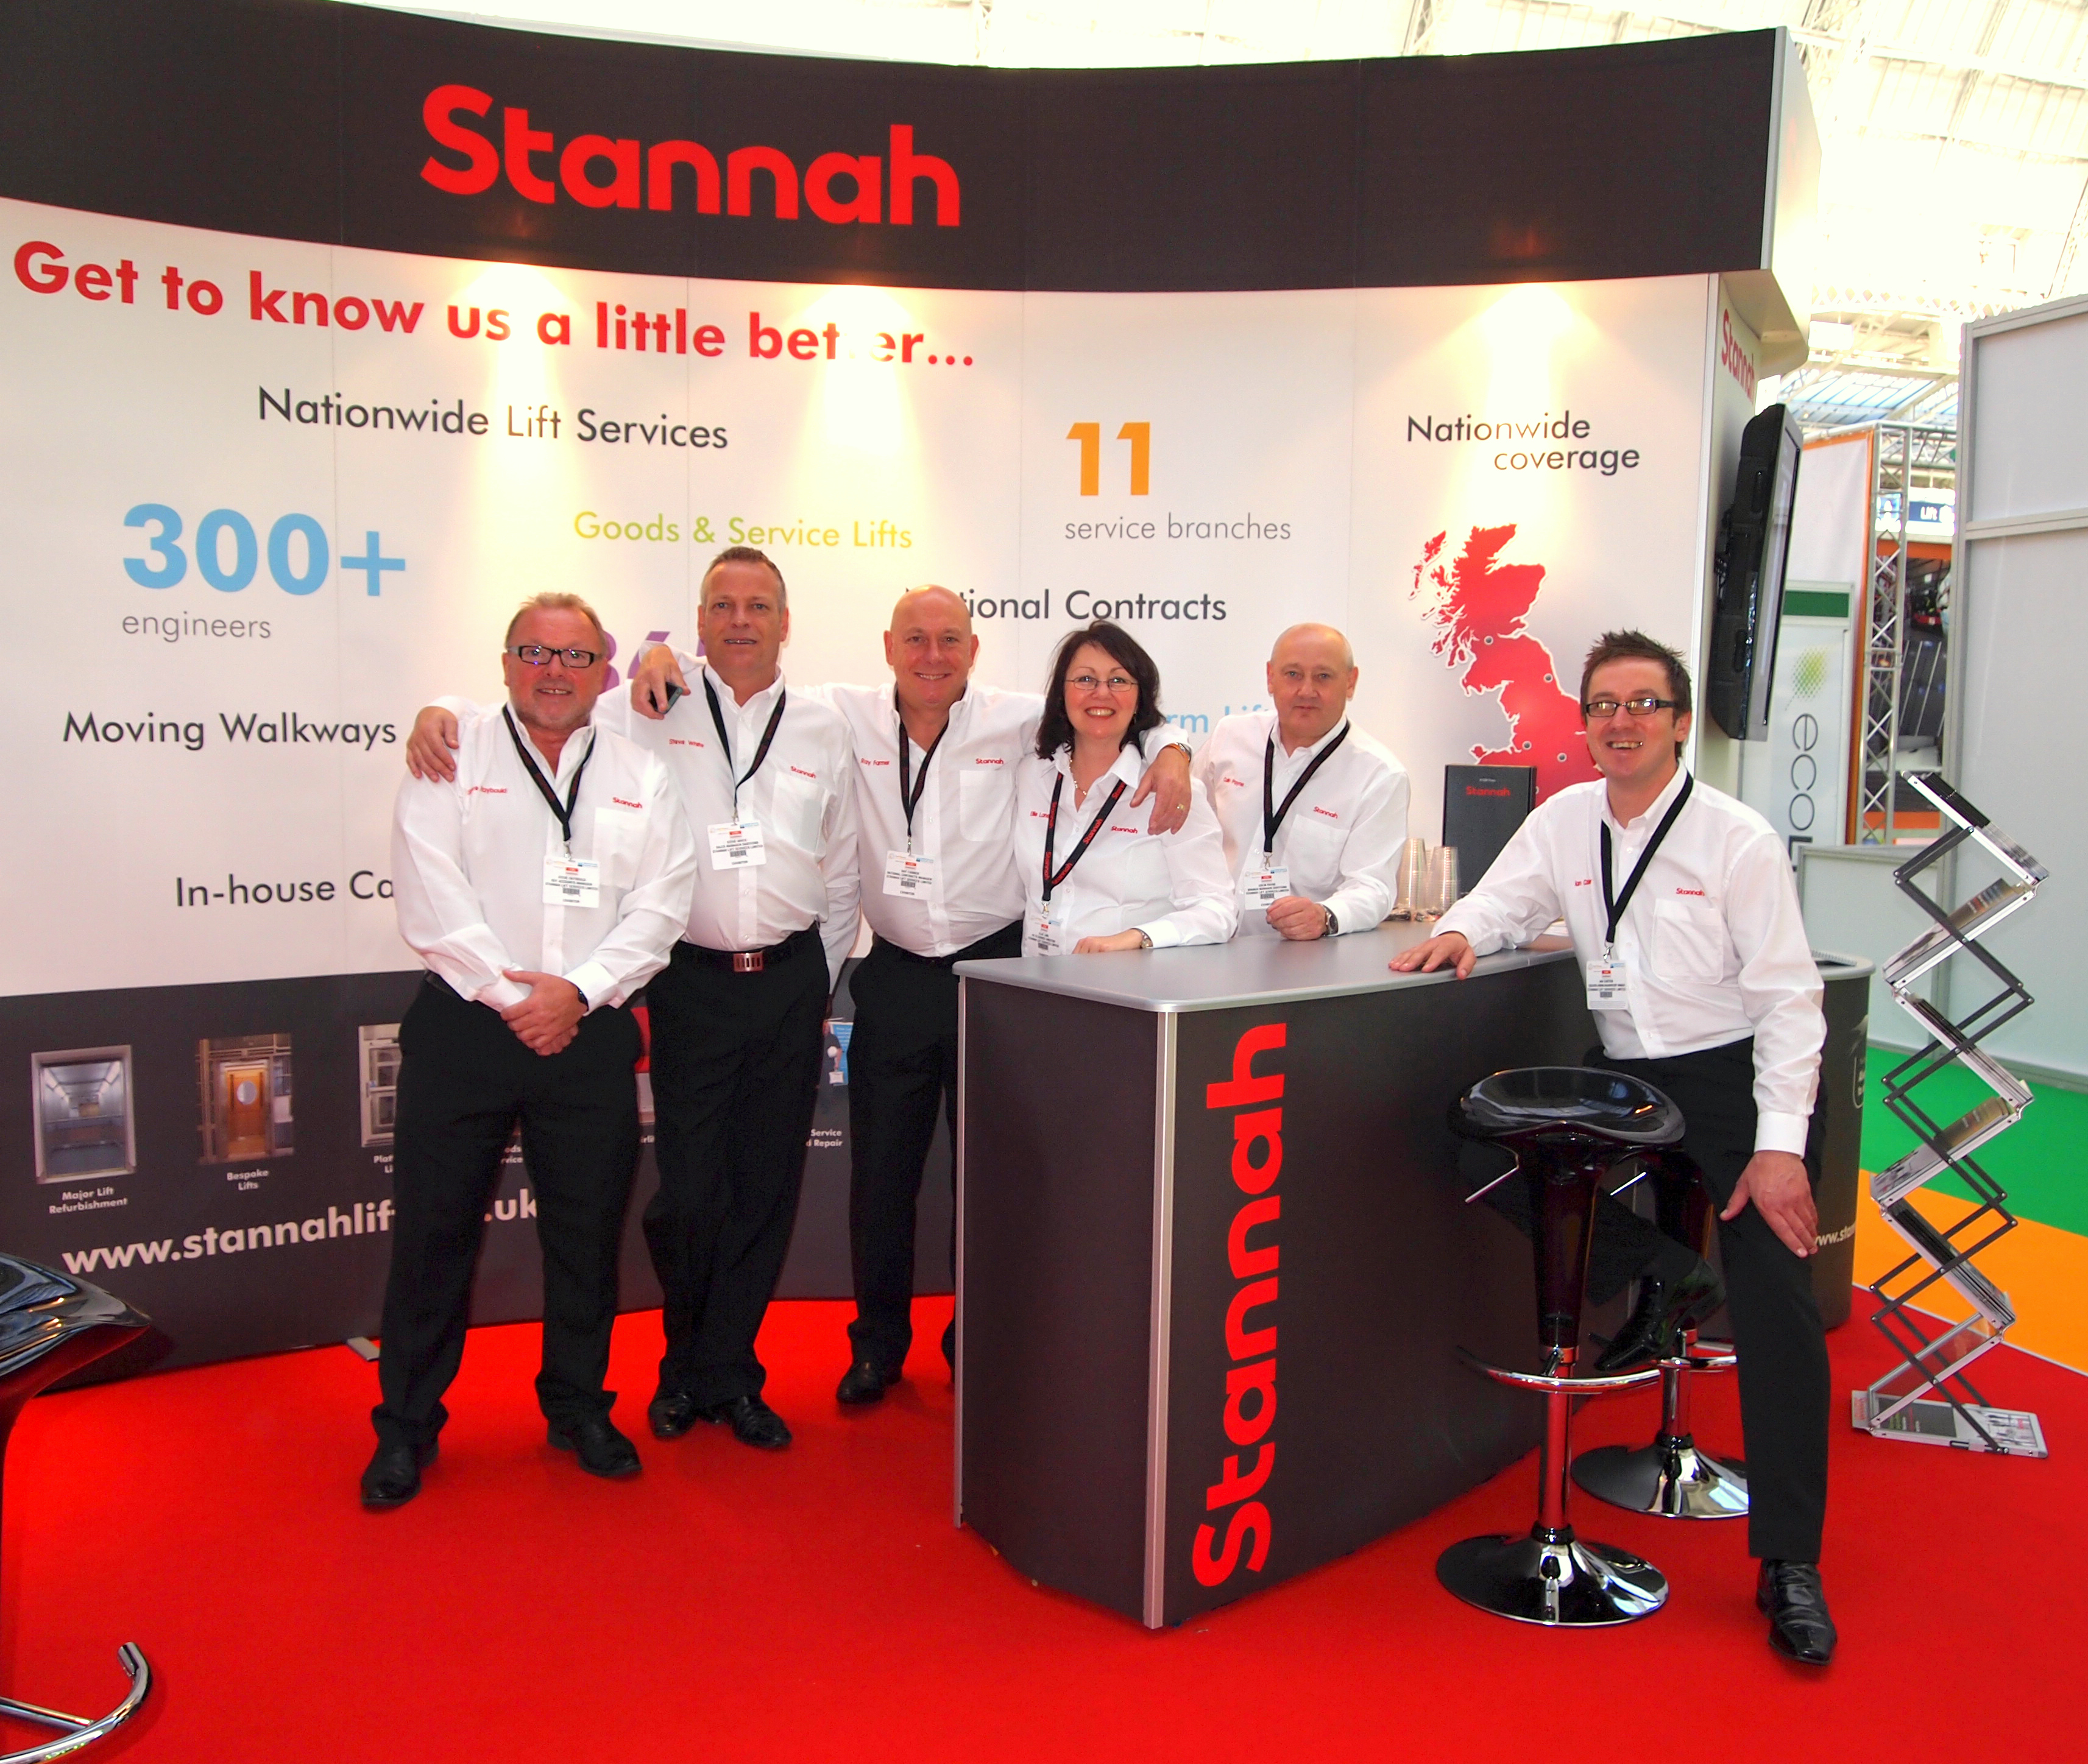 Stannah Lift Services at the Facilities Show 2014